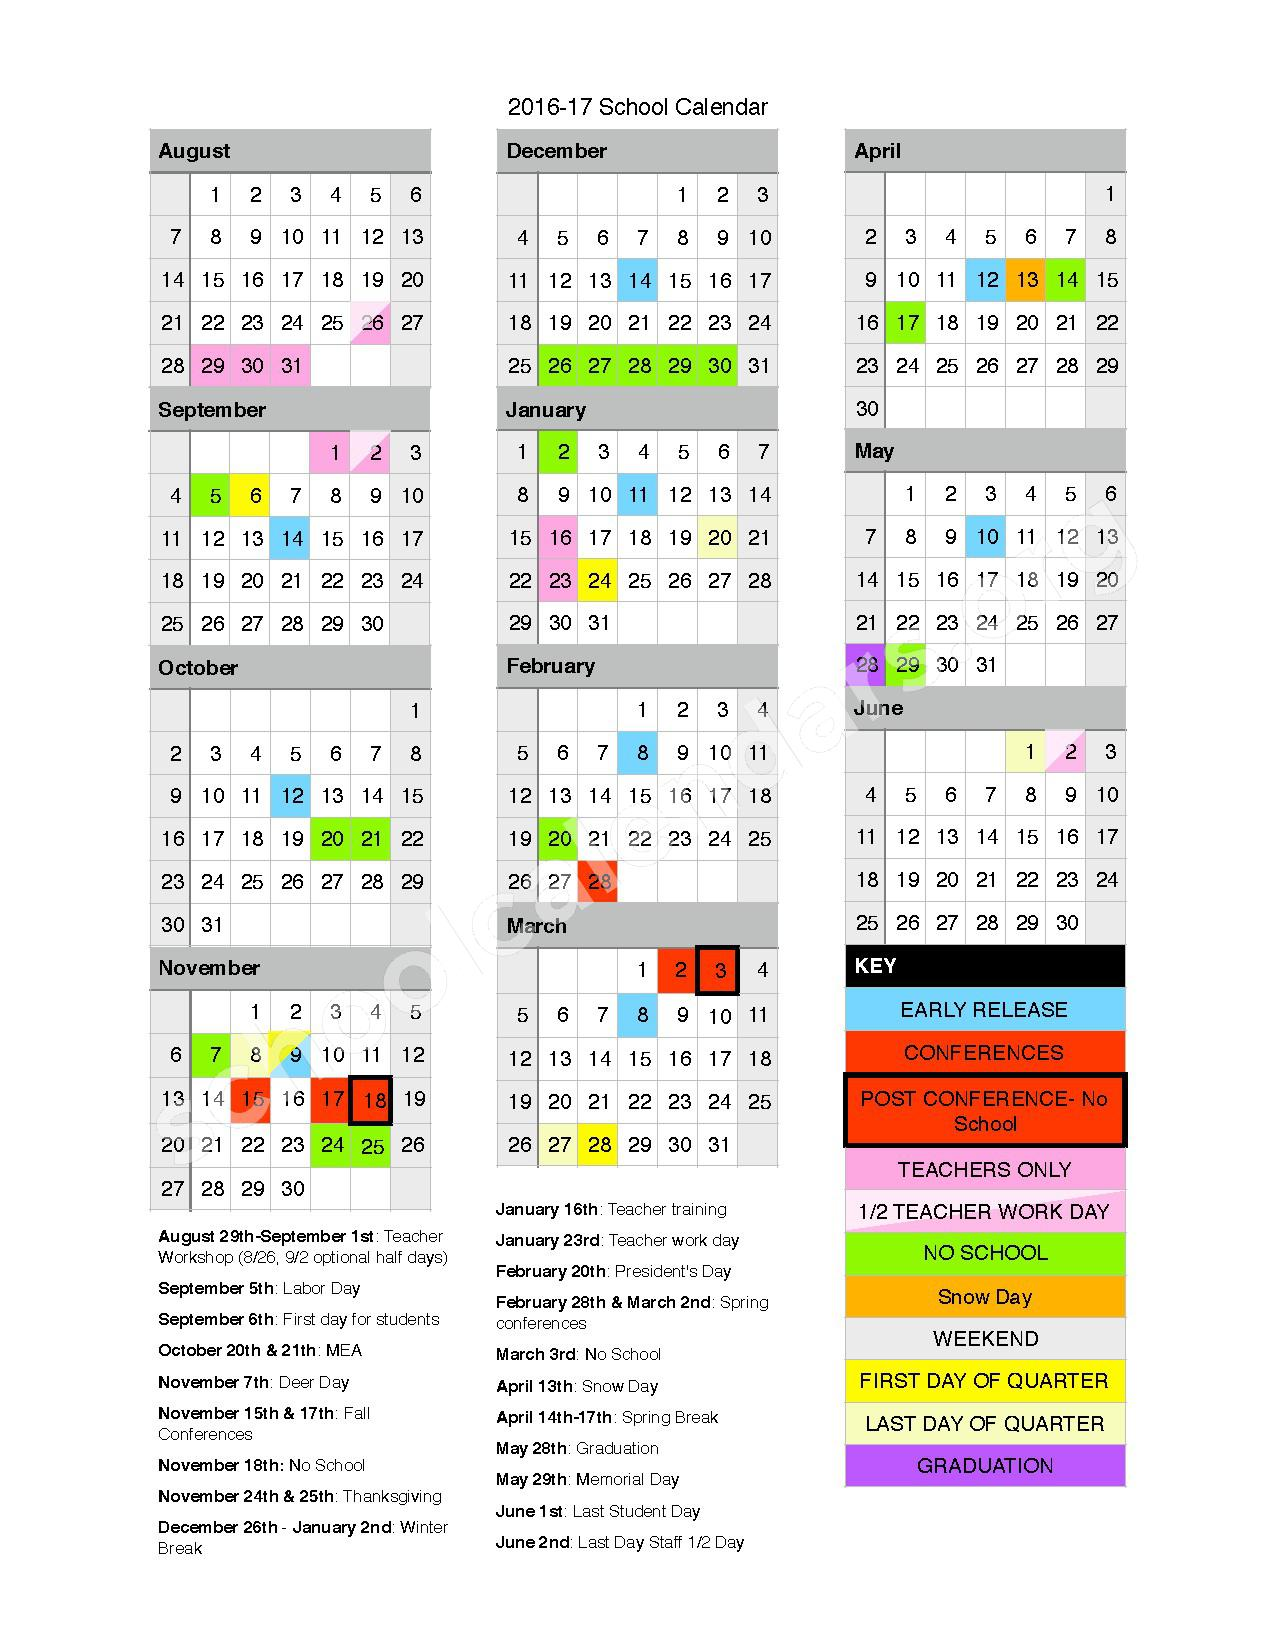 2016 - 2017 District Calendar – Hinckley-Finlayson School District – page 1